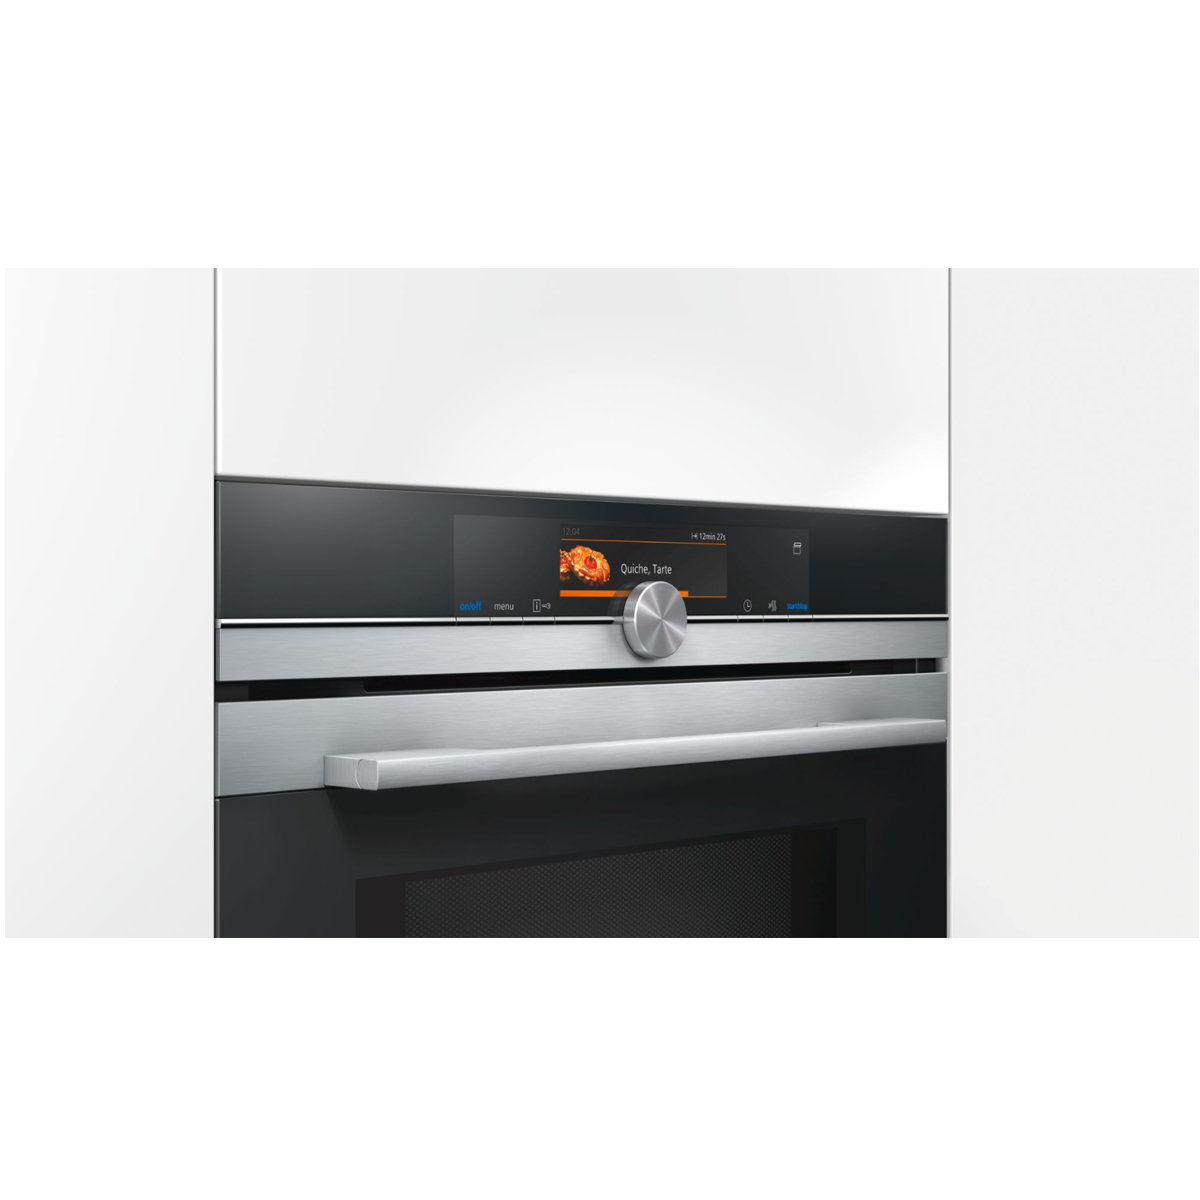 Siemens iQ700  CN678G4S1B Compact Oven With Microwave and PulseSteam 140350